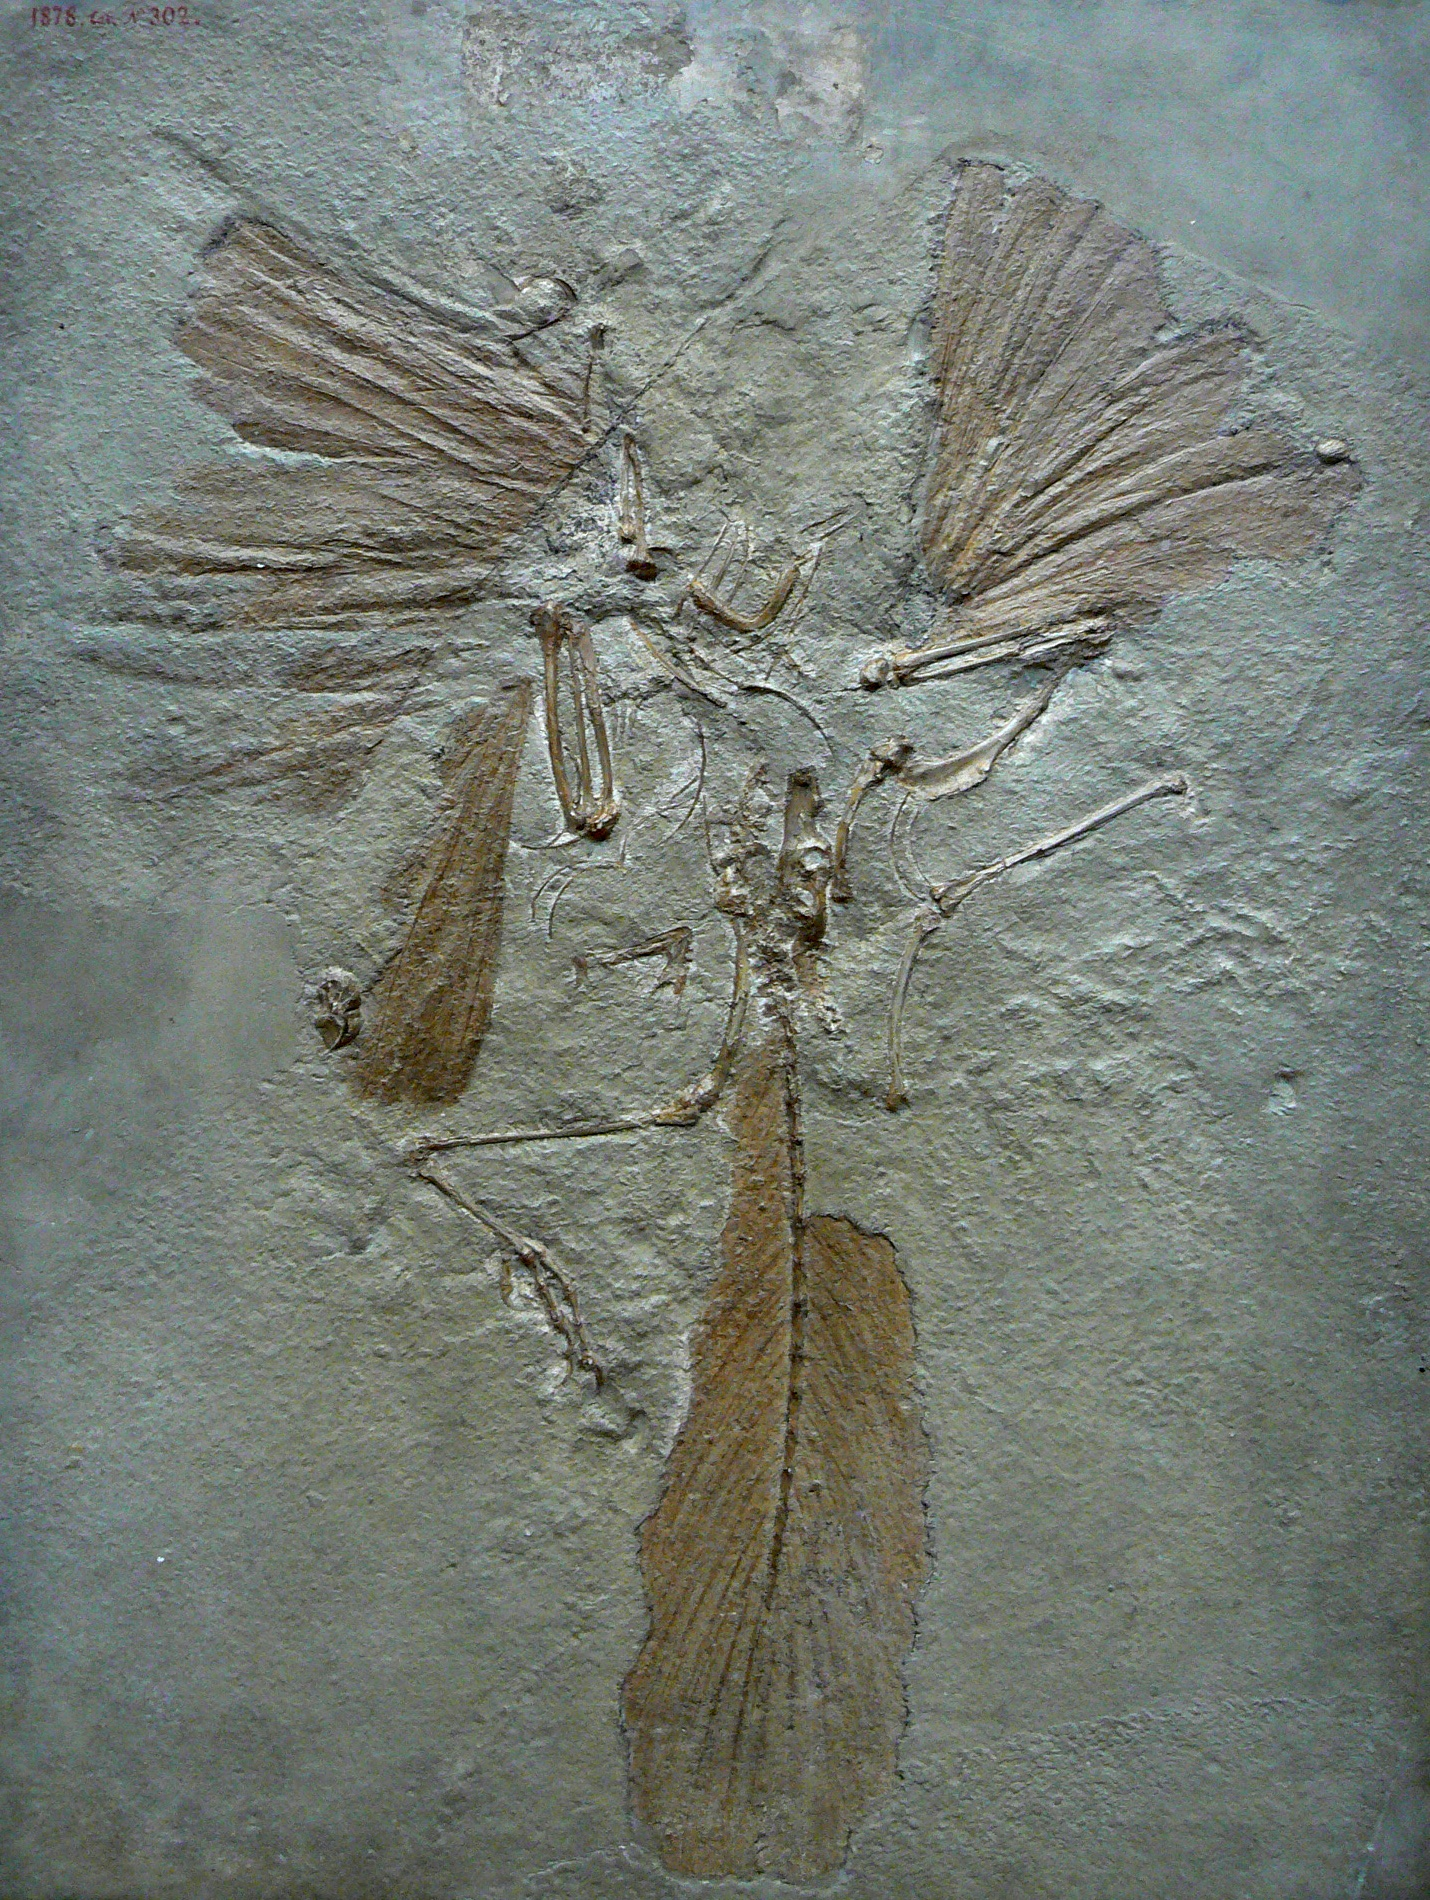 File:Archaeopteryx lithographica paris.JPG - Wikimedia Commons Archaeopteryx Not A Transitional Form